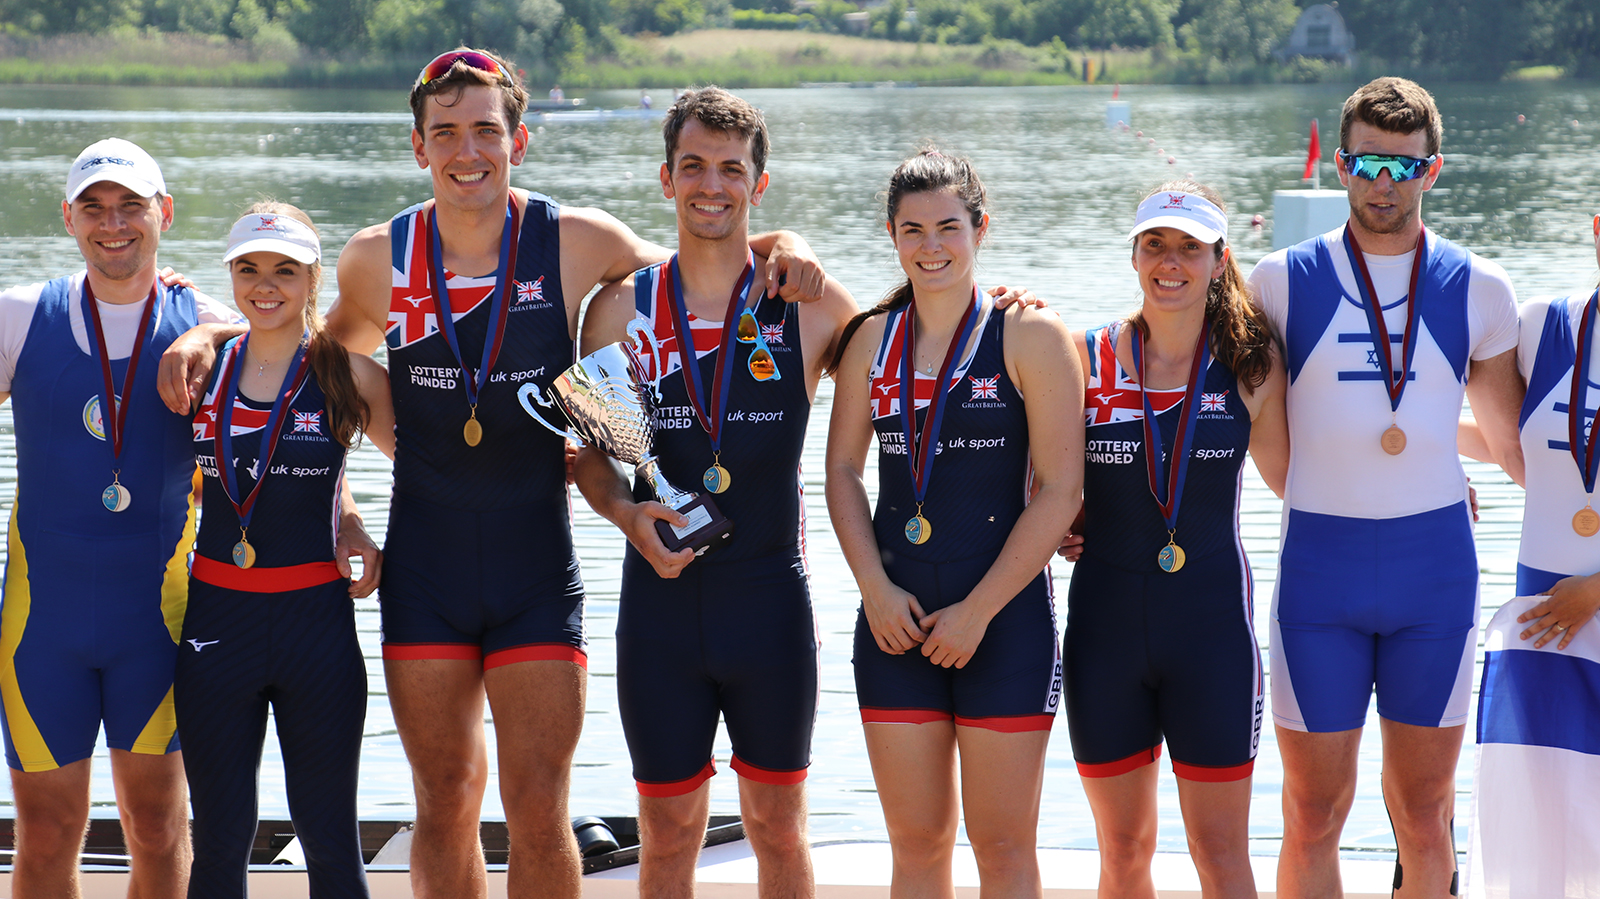 f48787271ec Great Britain rowers were in the medals at the Gavirate International  Regatta this weekend